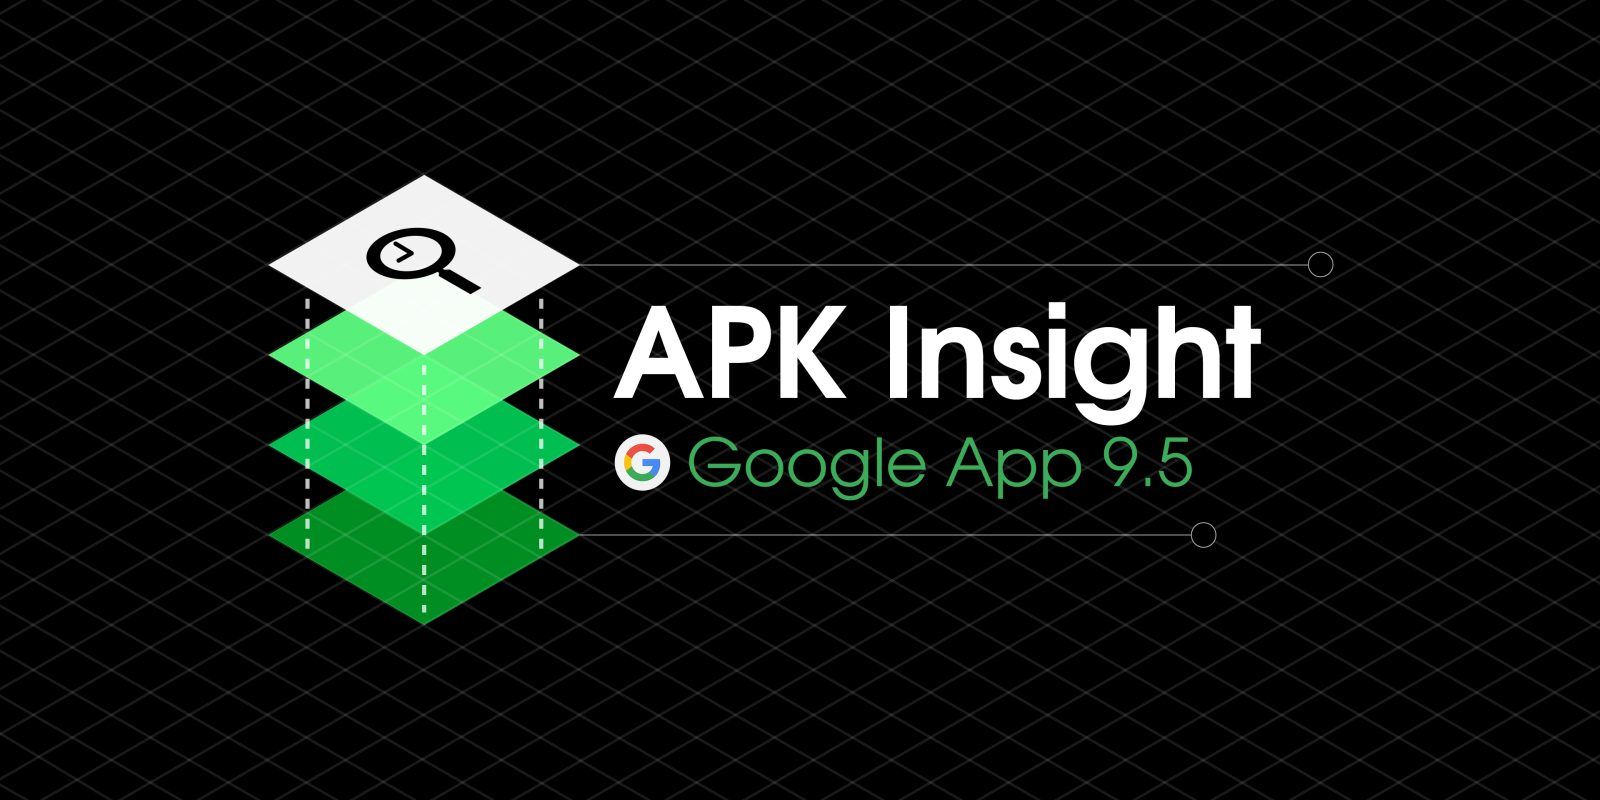 Google app 9.5 preps Assistant Dark mode, additional 'Updates' functionality [APK Insight]